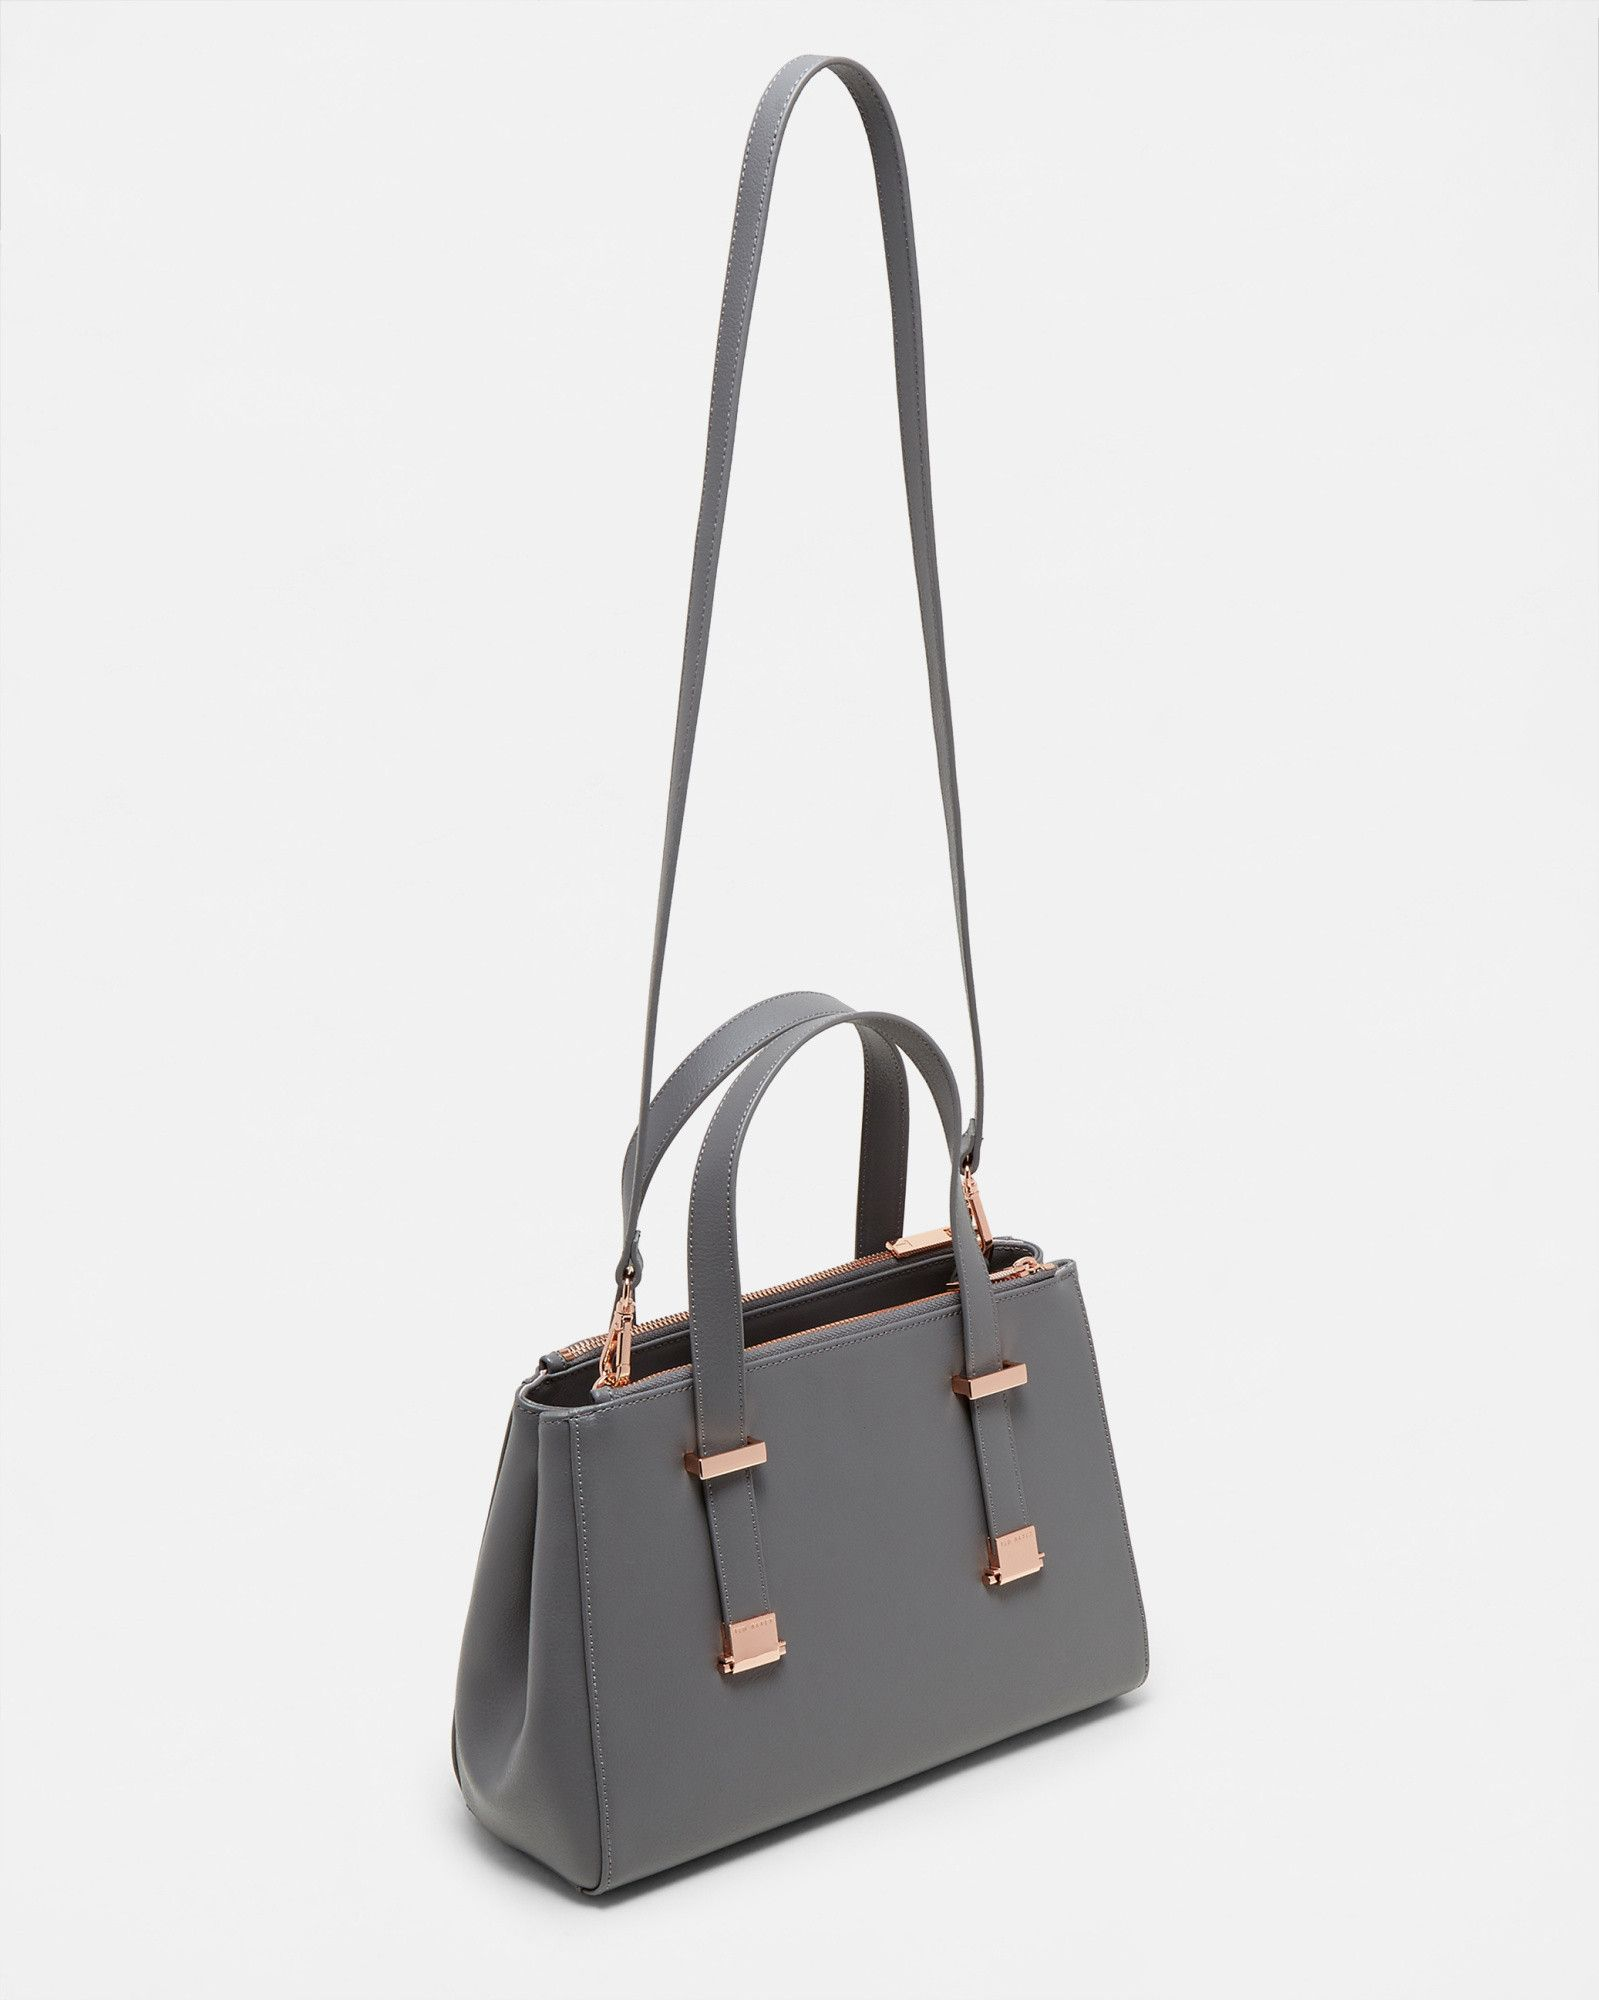 0baef5502b Small leather pebble grain tote bag - Mid Gray | Bags | Ted Baker ...